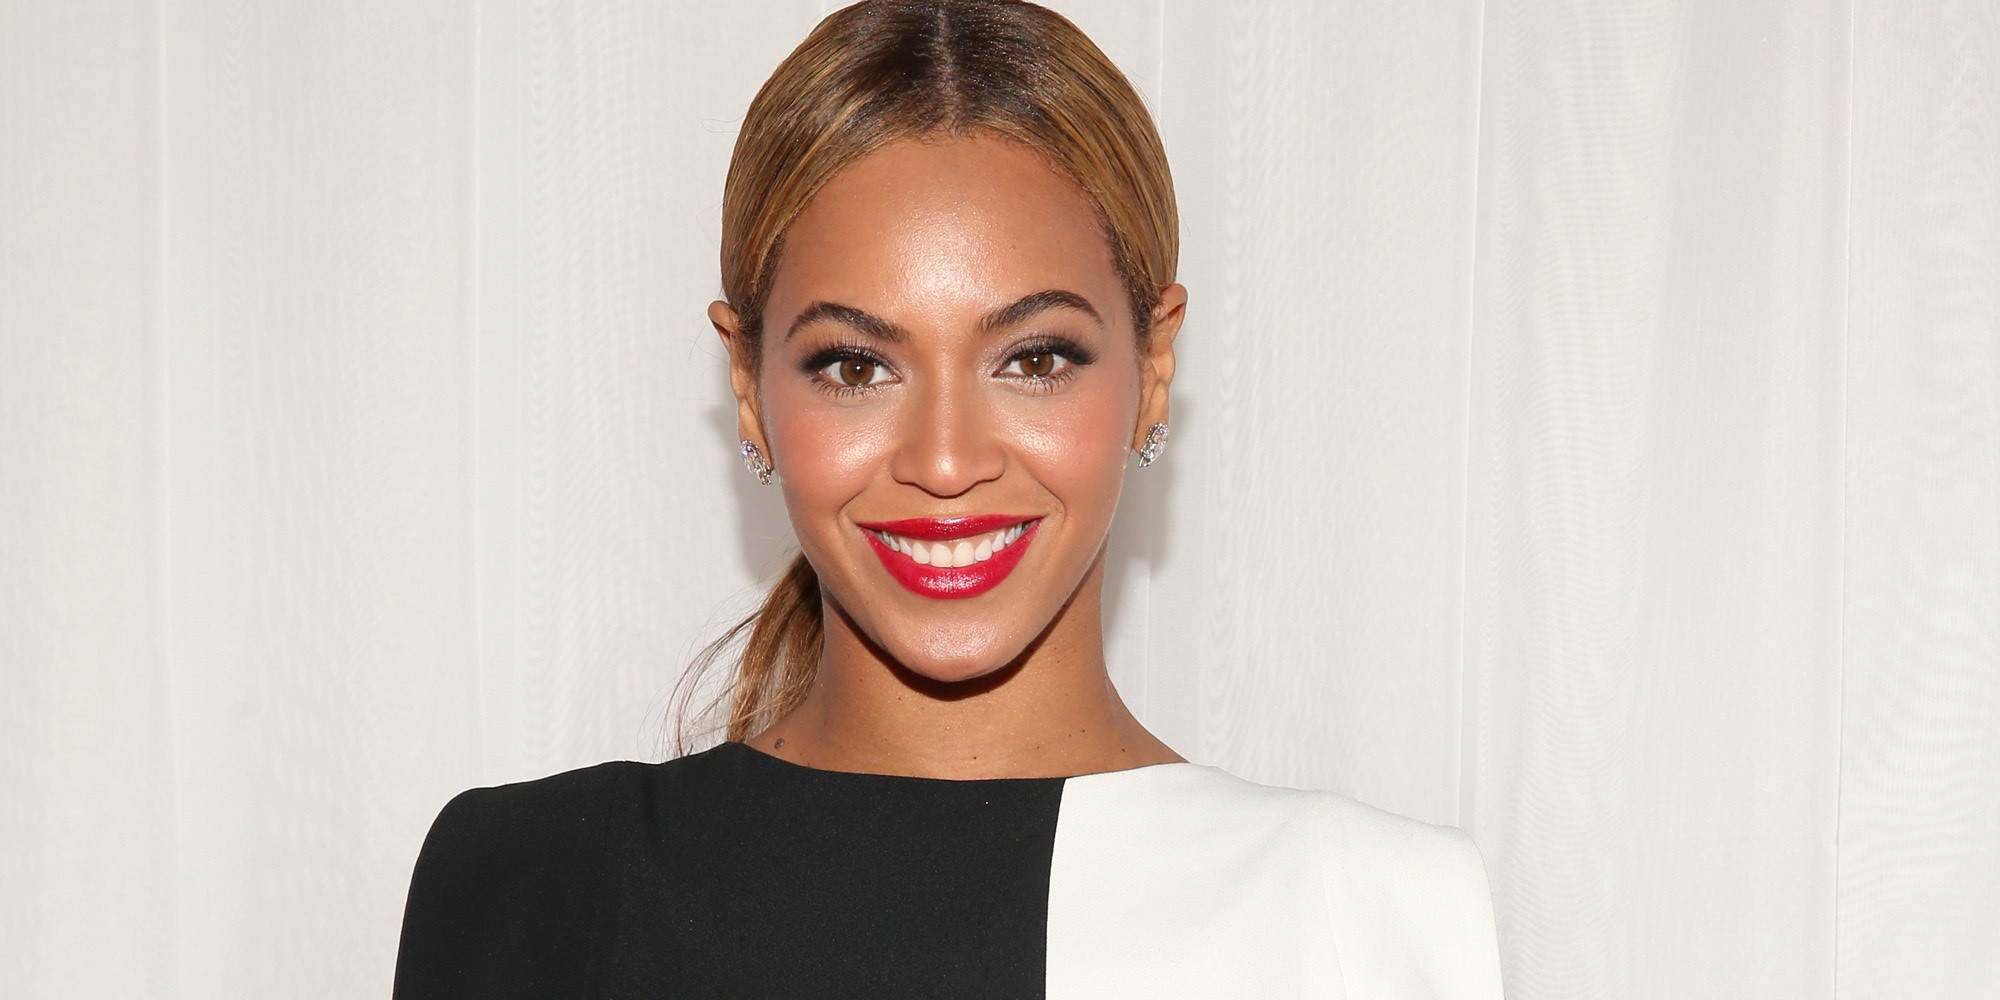 It's became known with whom Jay-Z cheated on Beyonce